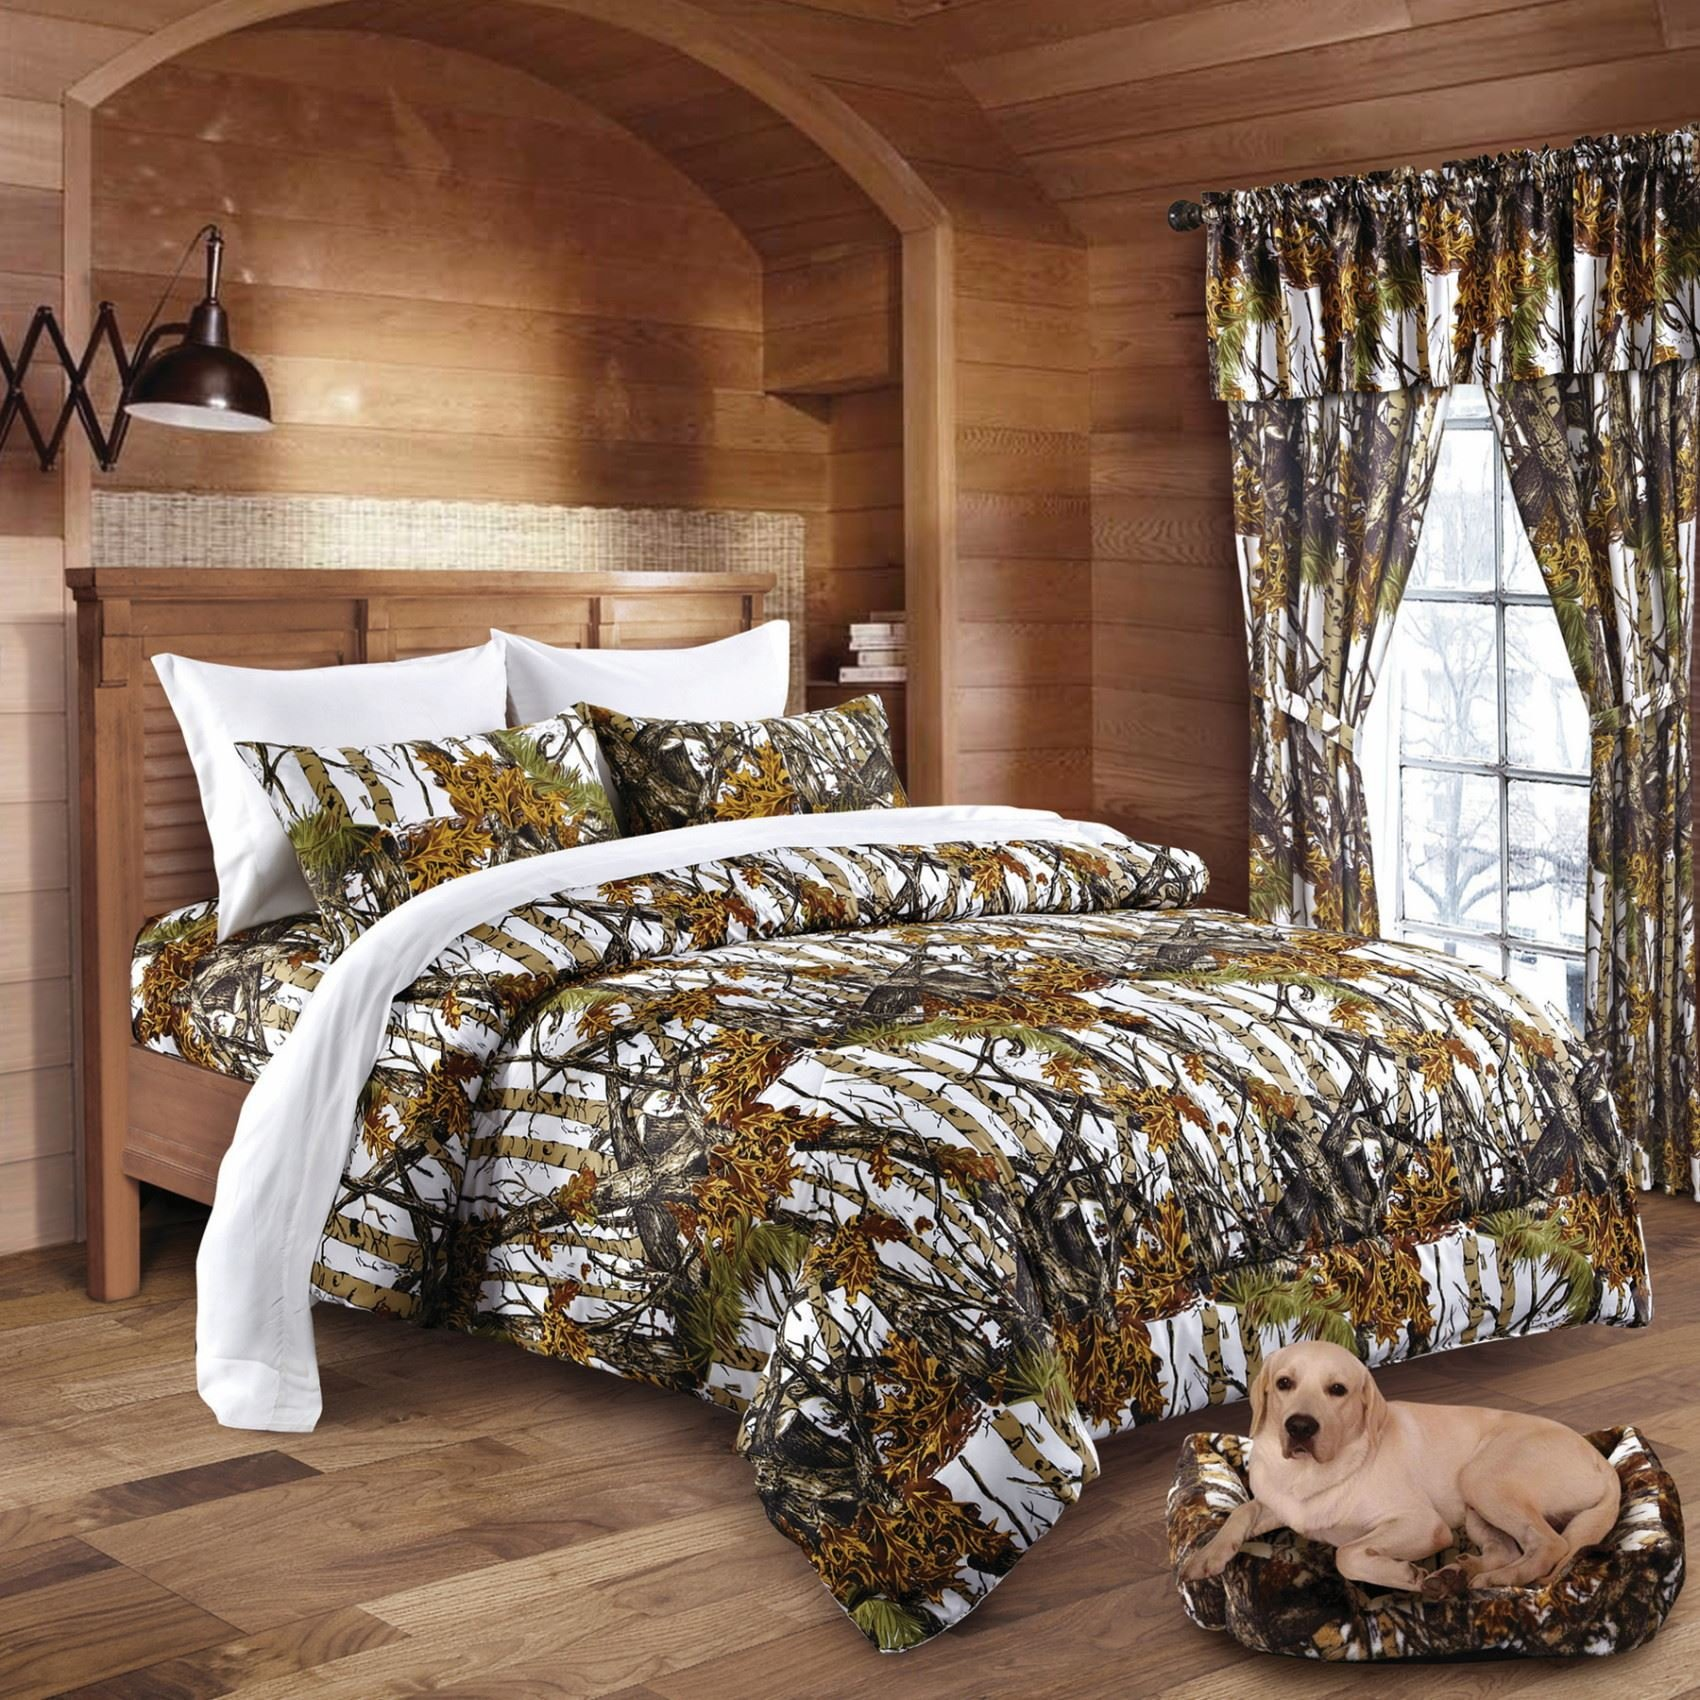 20 Lakes The Woods White Camo Comforter - King